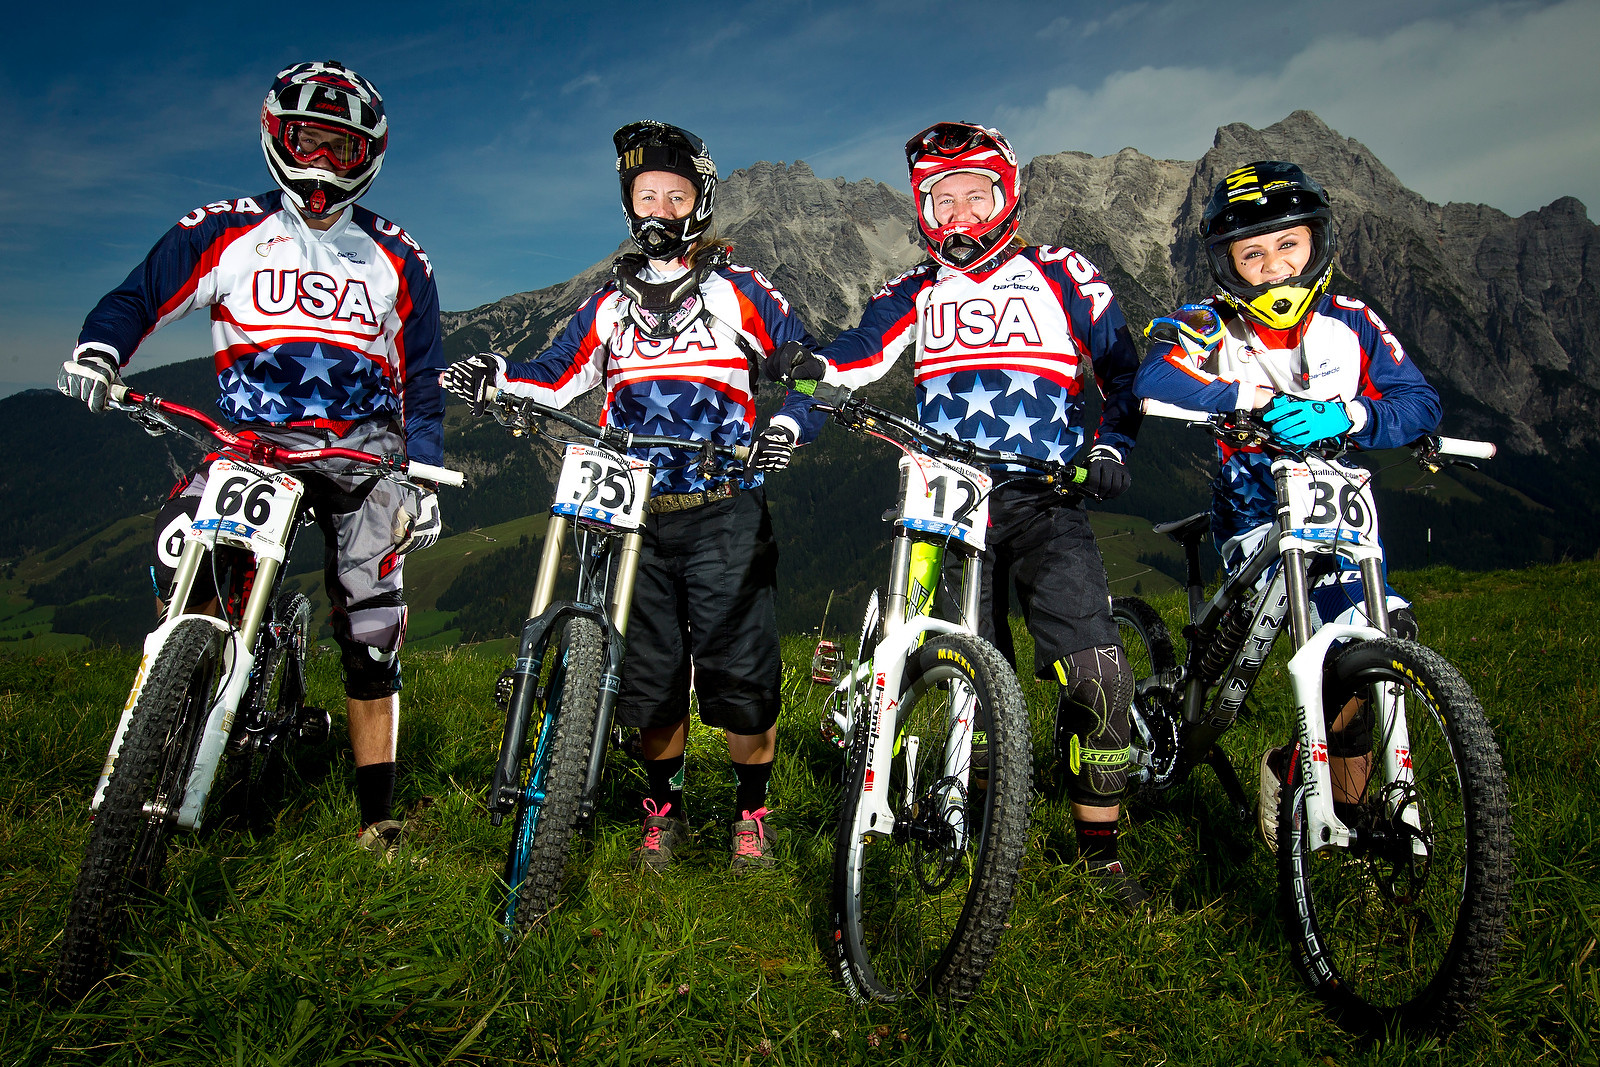 Team USA Riders - World Championships Riders and Bikes - Mountain Biking Pictures - Vital MTB